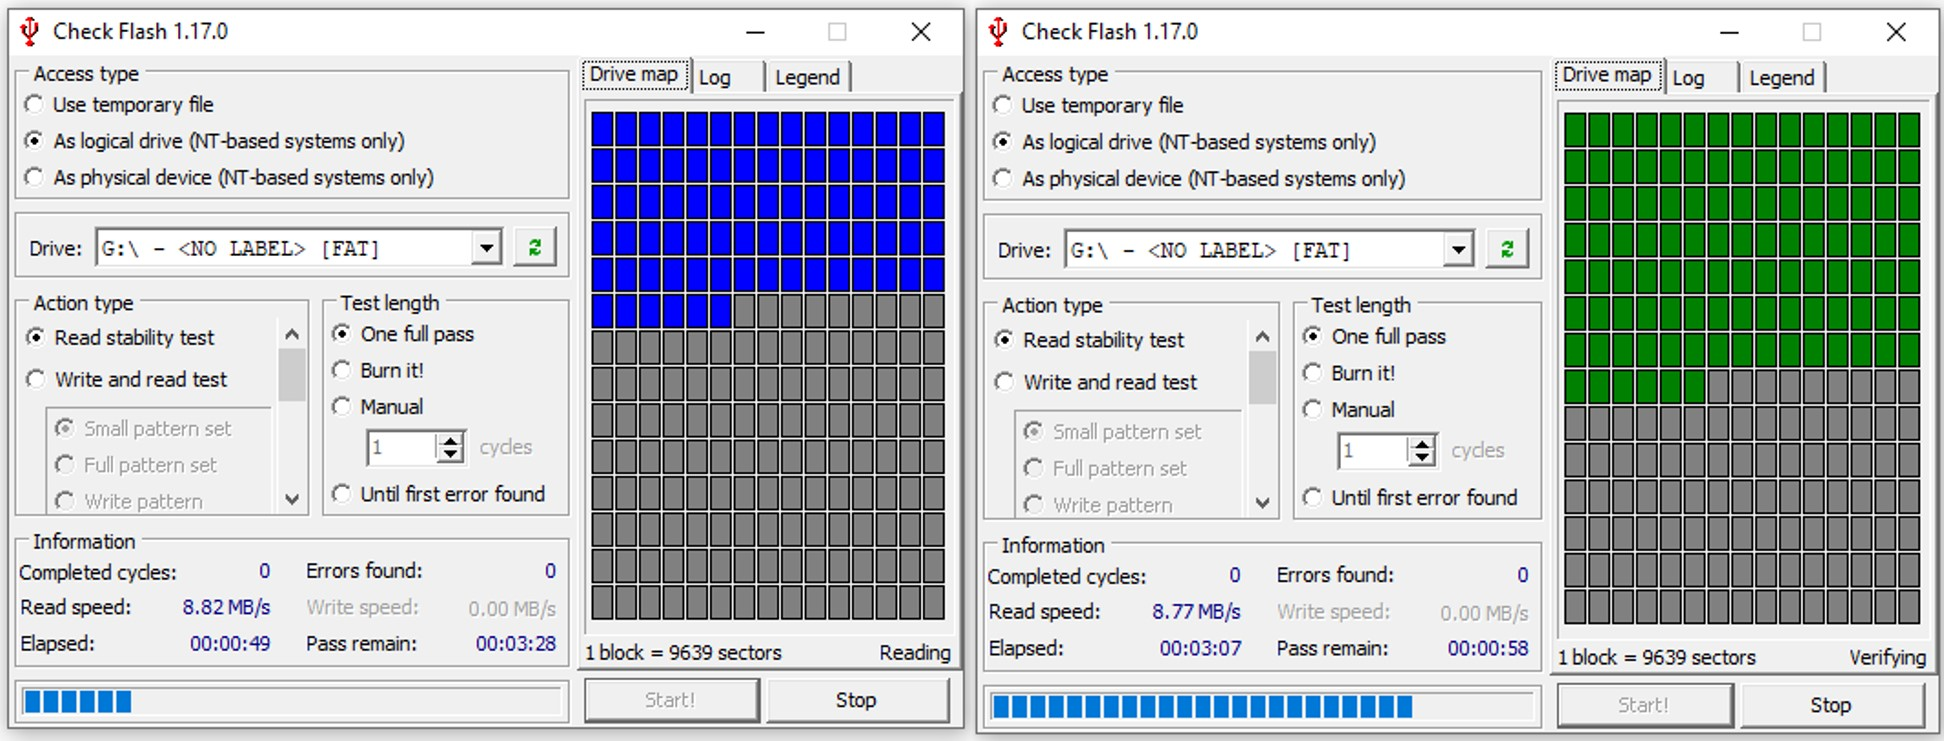 Screen capture of Check Flash software during an analysis of a USB flash drive and showing the blocks being read (in blue) and verified (in green).